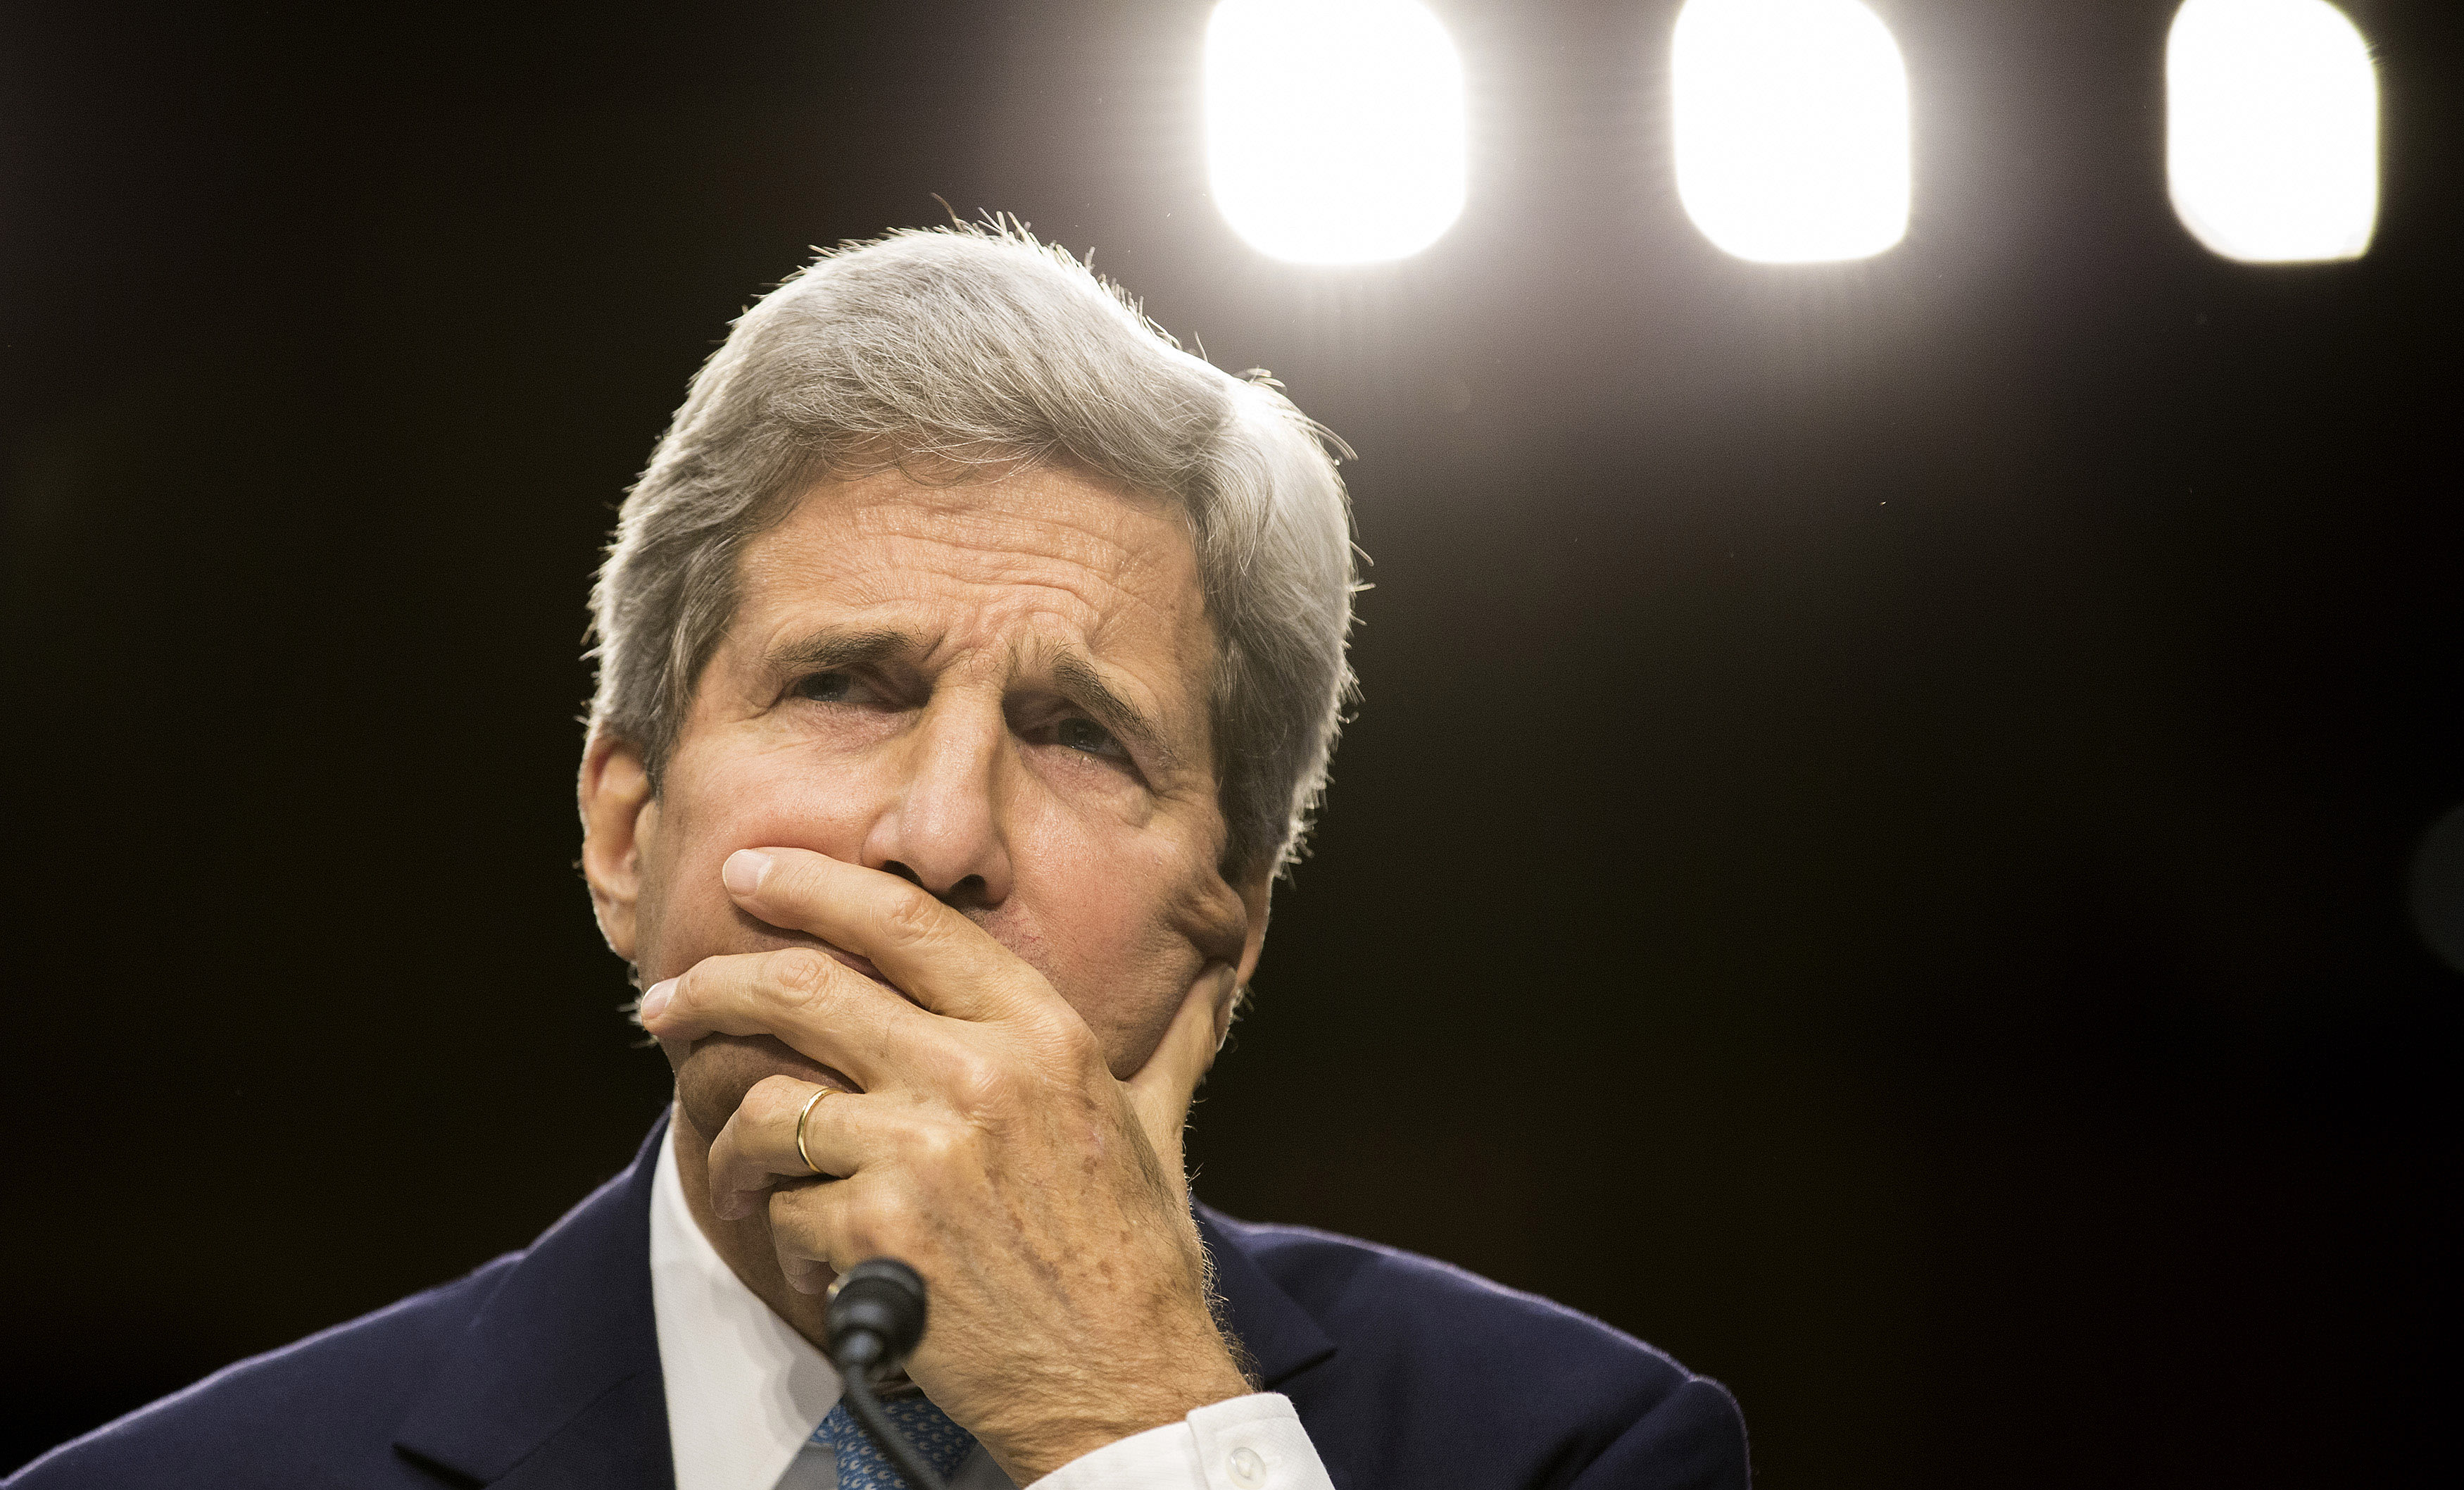 John Kerry made a gaffe that helps Putin and Assad